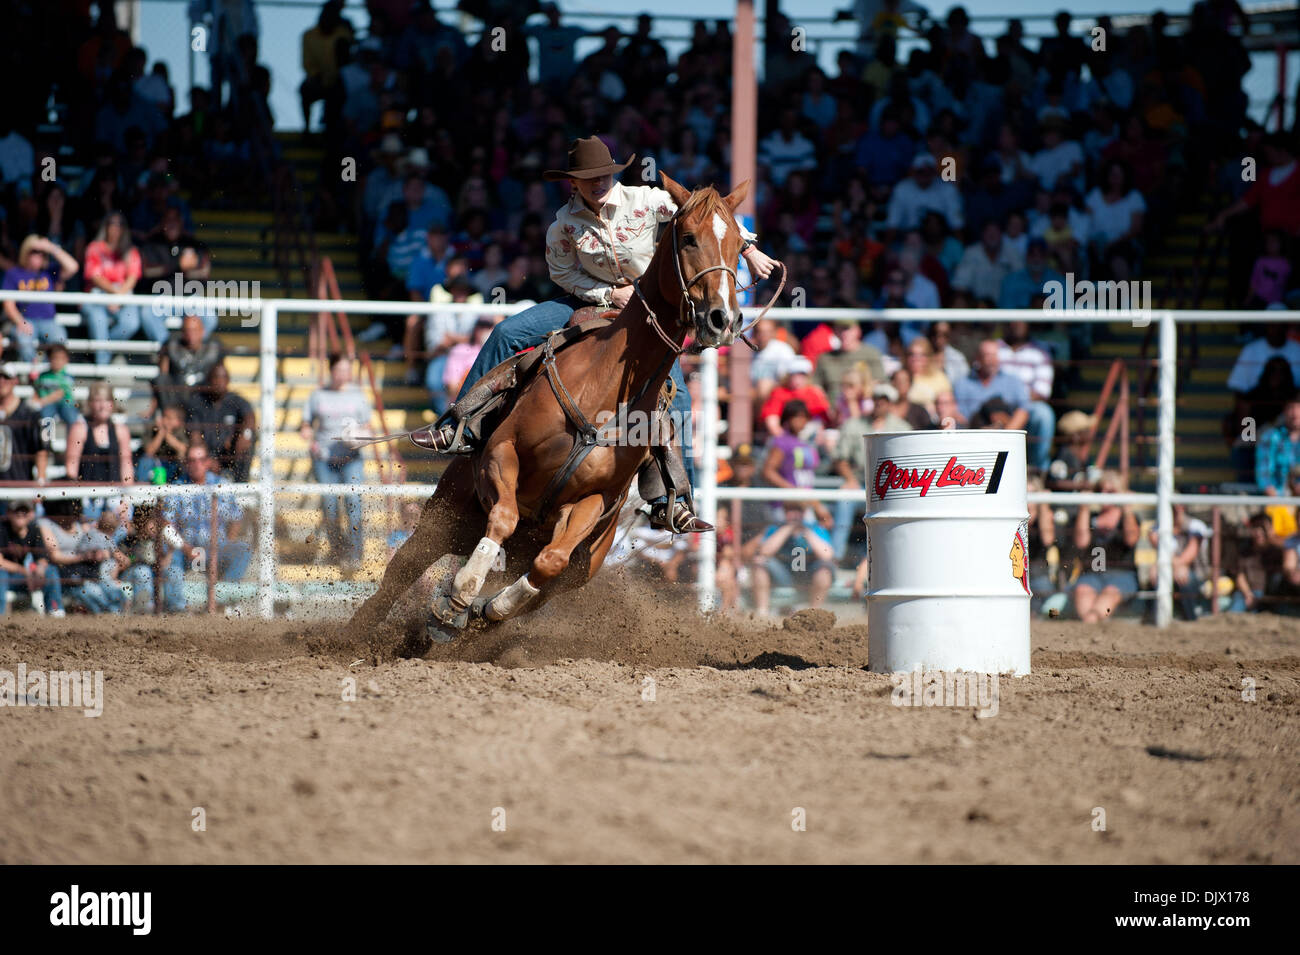 Oct 17, 2010 - Angola, Louisiana, U.S. - The only non convict event at the Angola prison rodeo is the barrel racing event. Here the all female contestants race around 3 barrels for the best times. (Credit Image: © Scott Schexnaydre/ZUMApress.com) - Stock Image